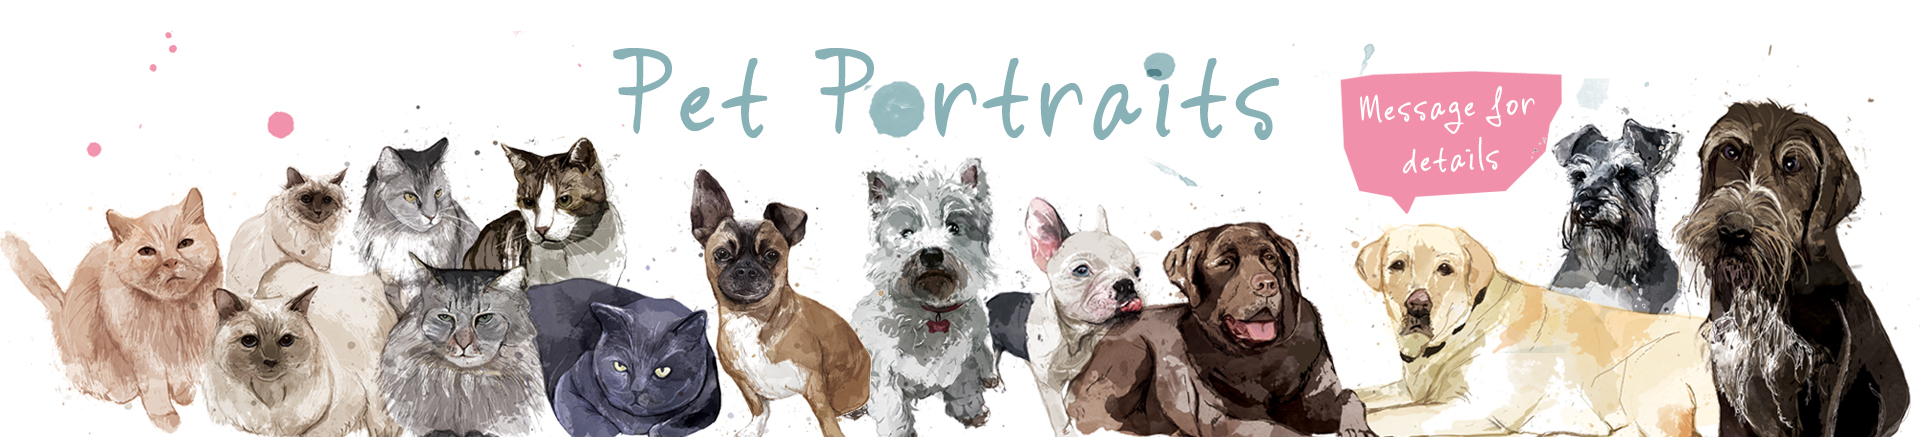 pet portraits slider